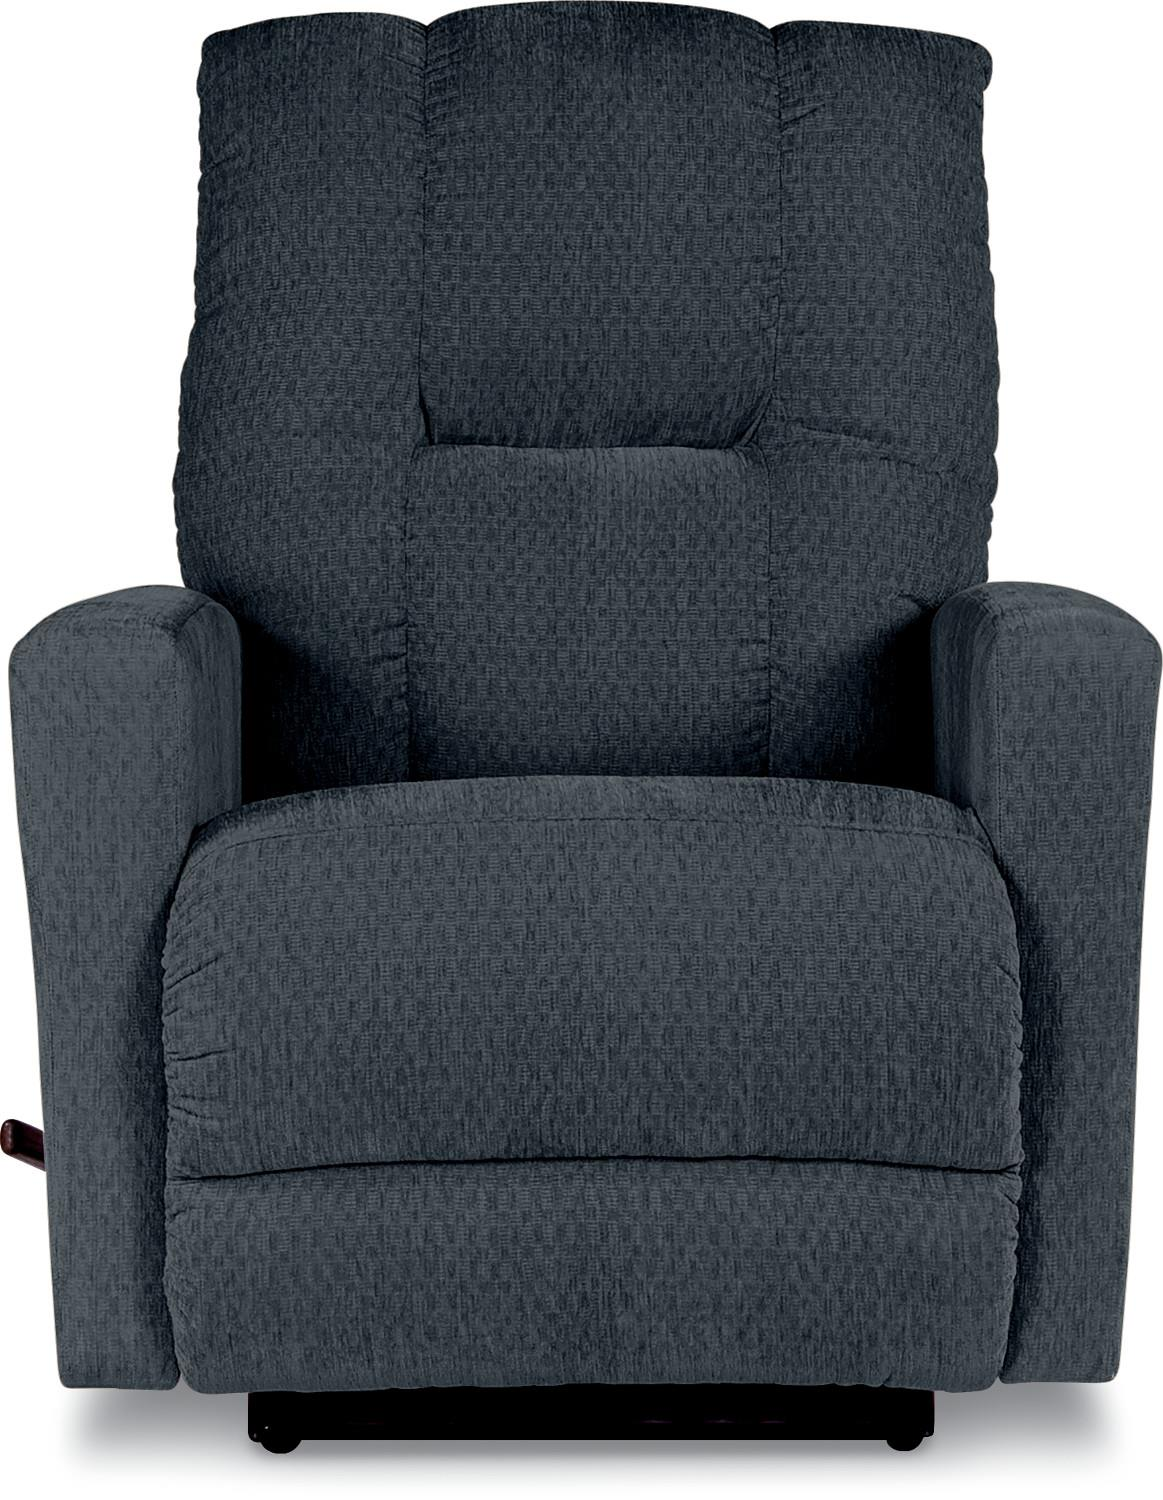 Casey RECLINA-WAY® Wall Recliner